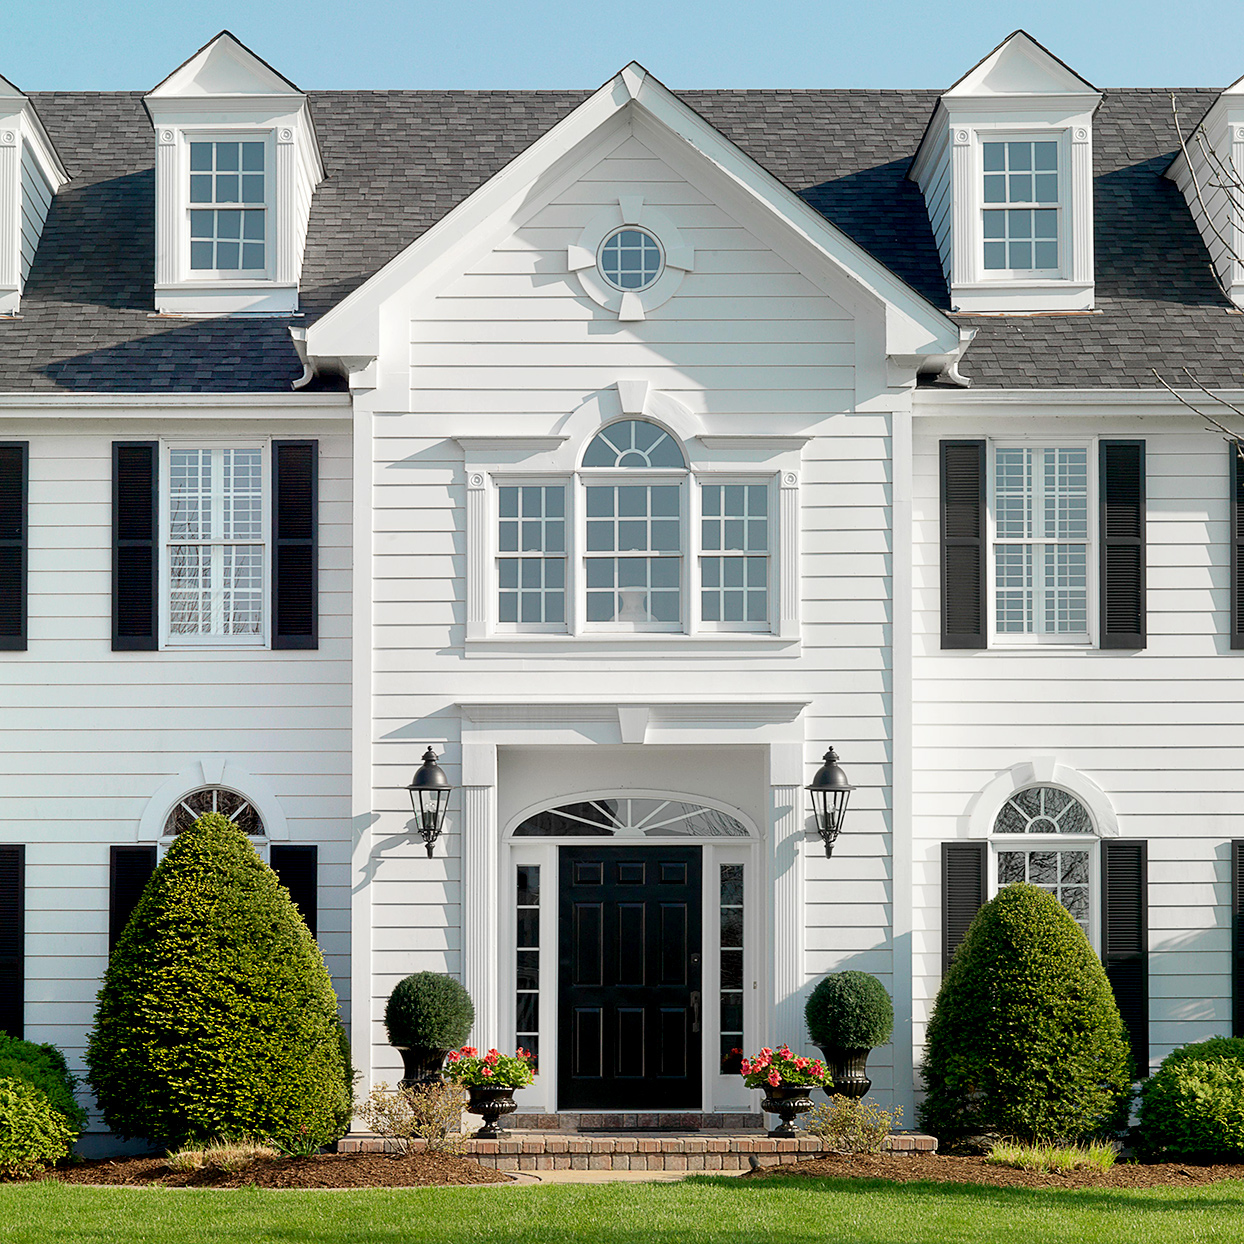 on-center entry colonial style home